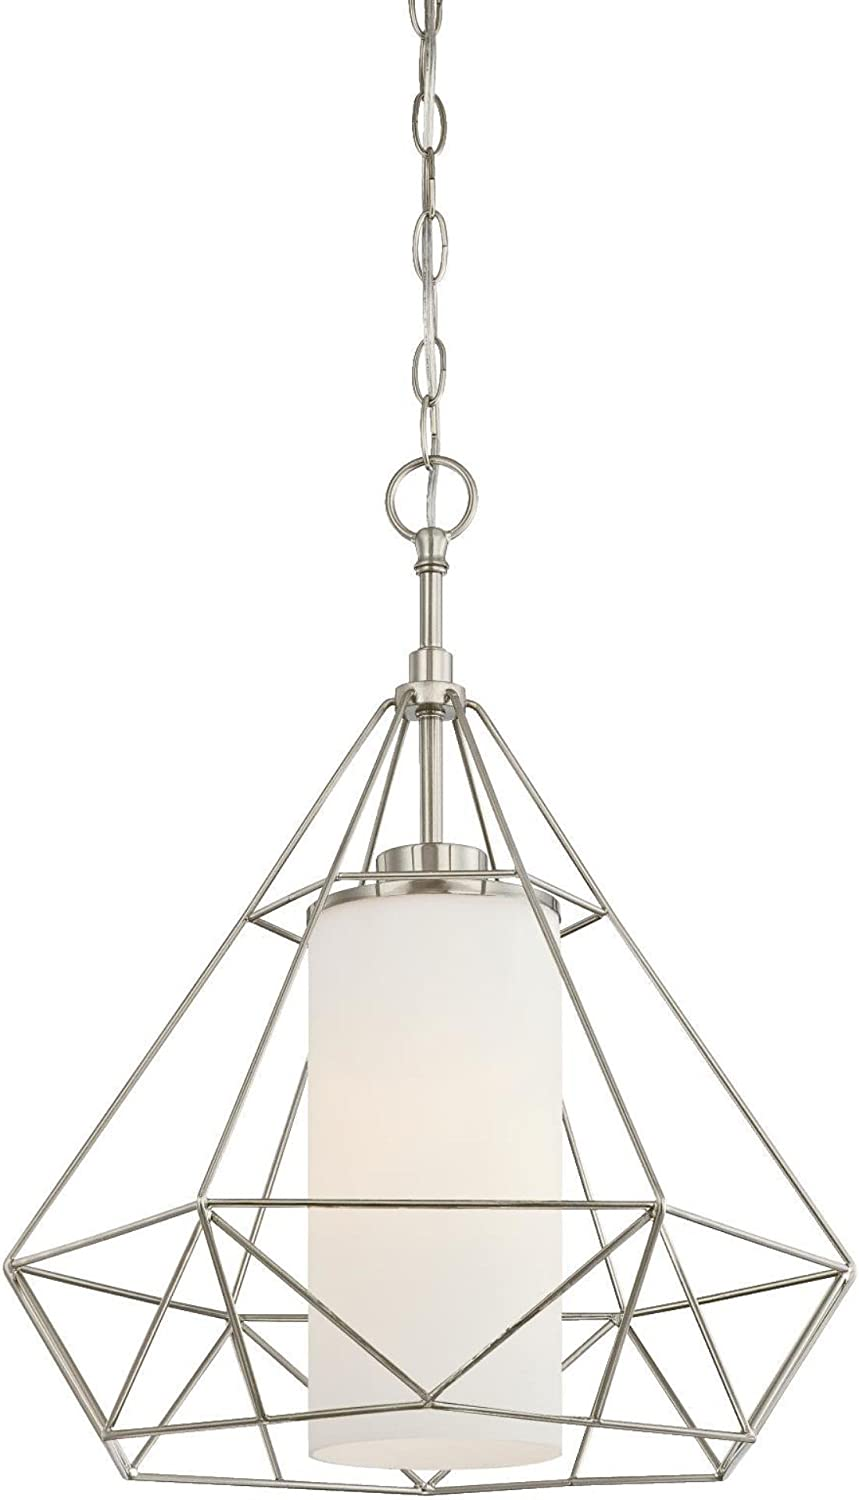 Westinghouse Lighting 6324500 One-Light Indoor Pendant, Brushed Nickel Finish with Frosted Opal Glass